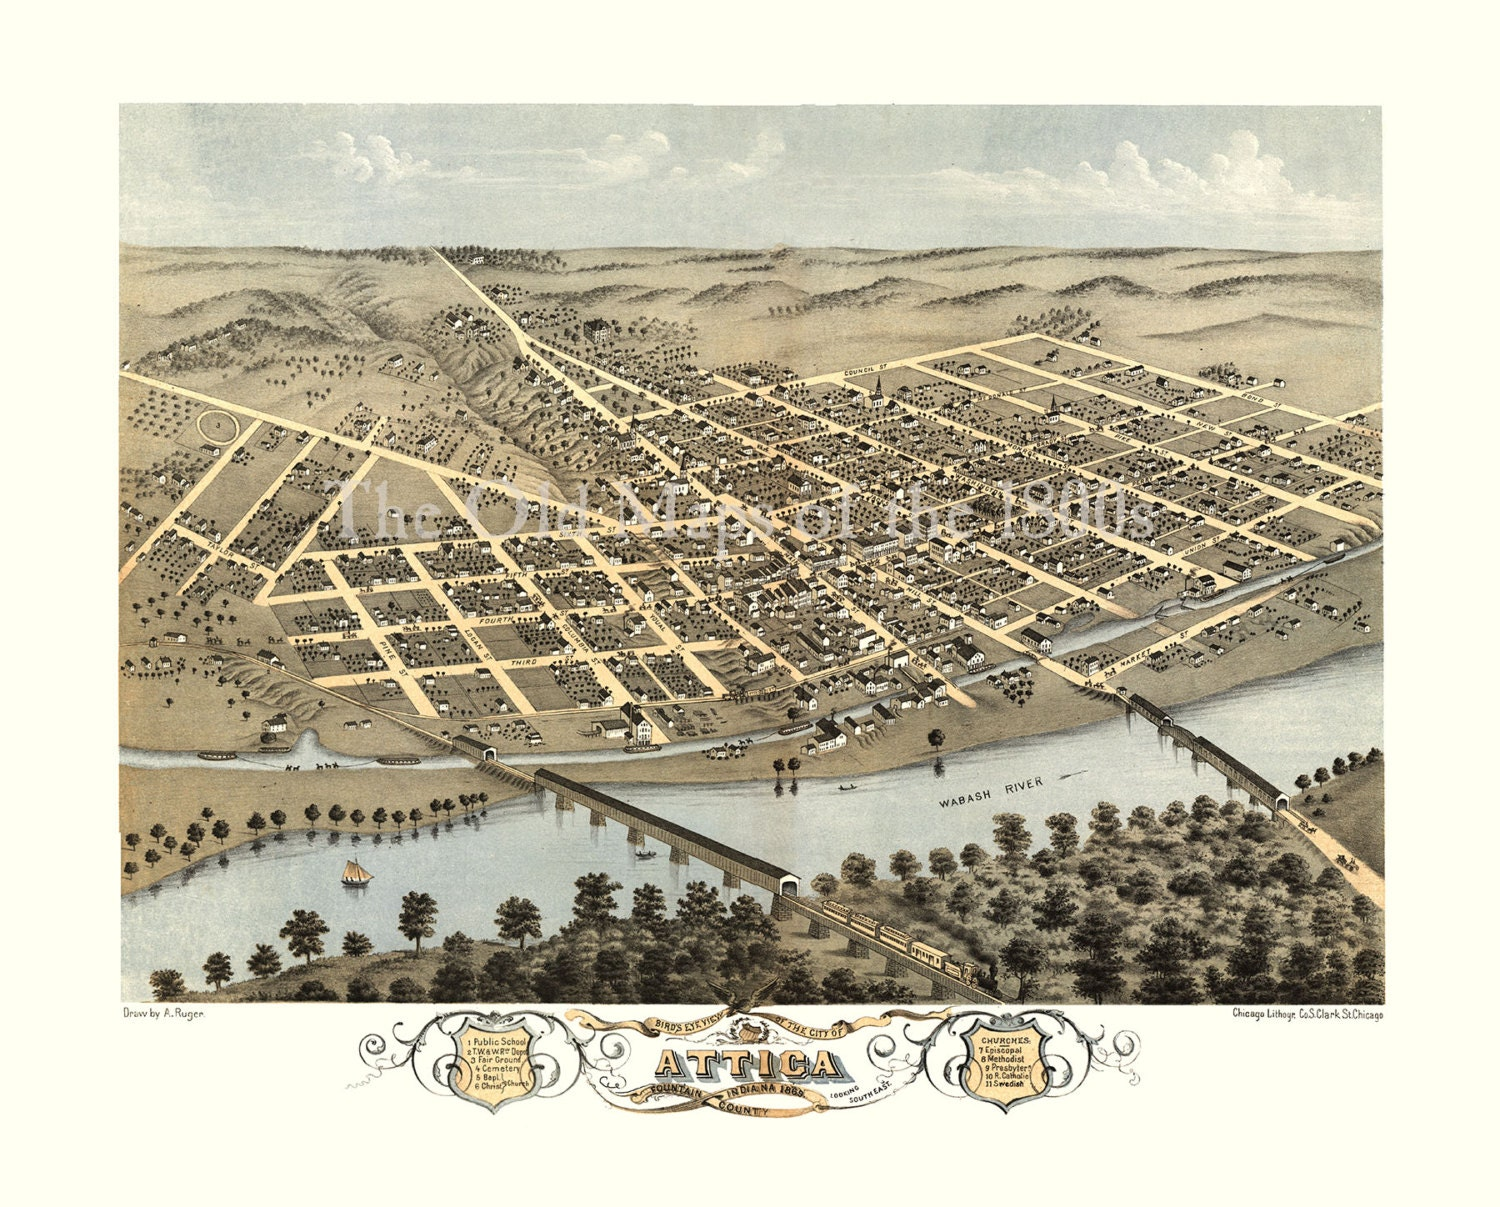 Attica, Indiana in 1869 - Bird's Eye View Map, Aerial Map, Panorama,  Vintage map, Antique map, Reproduction, Giclée, Framable map, Fine Art